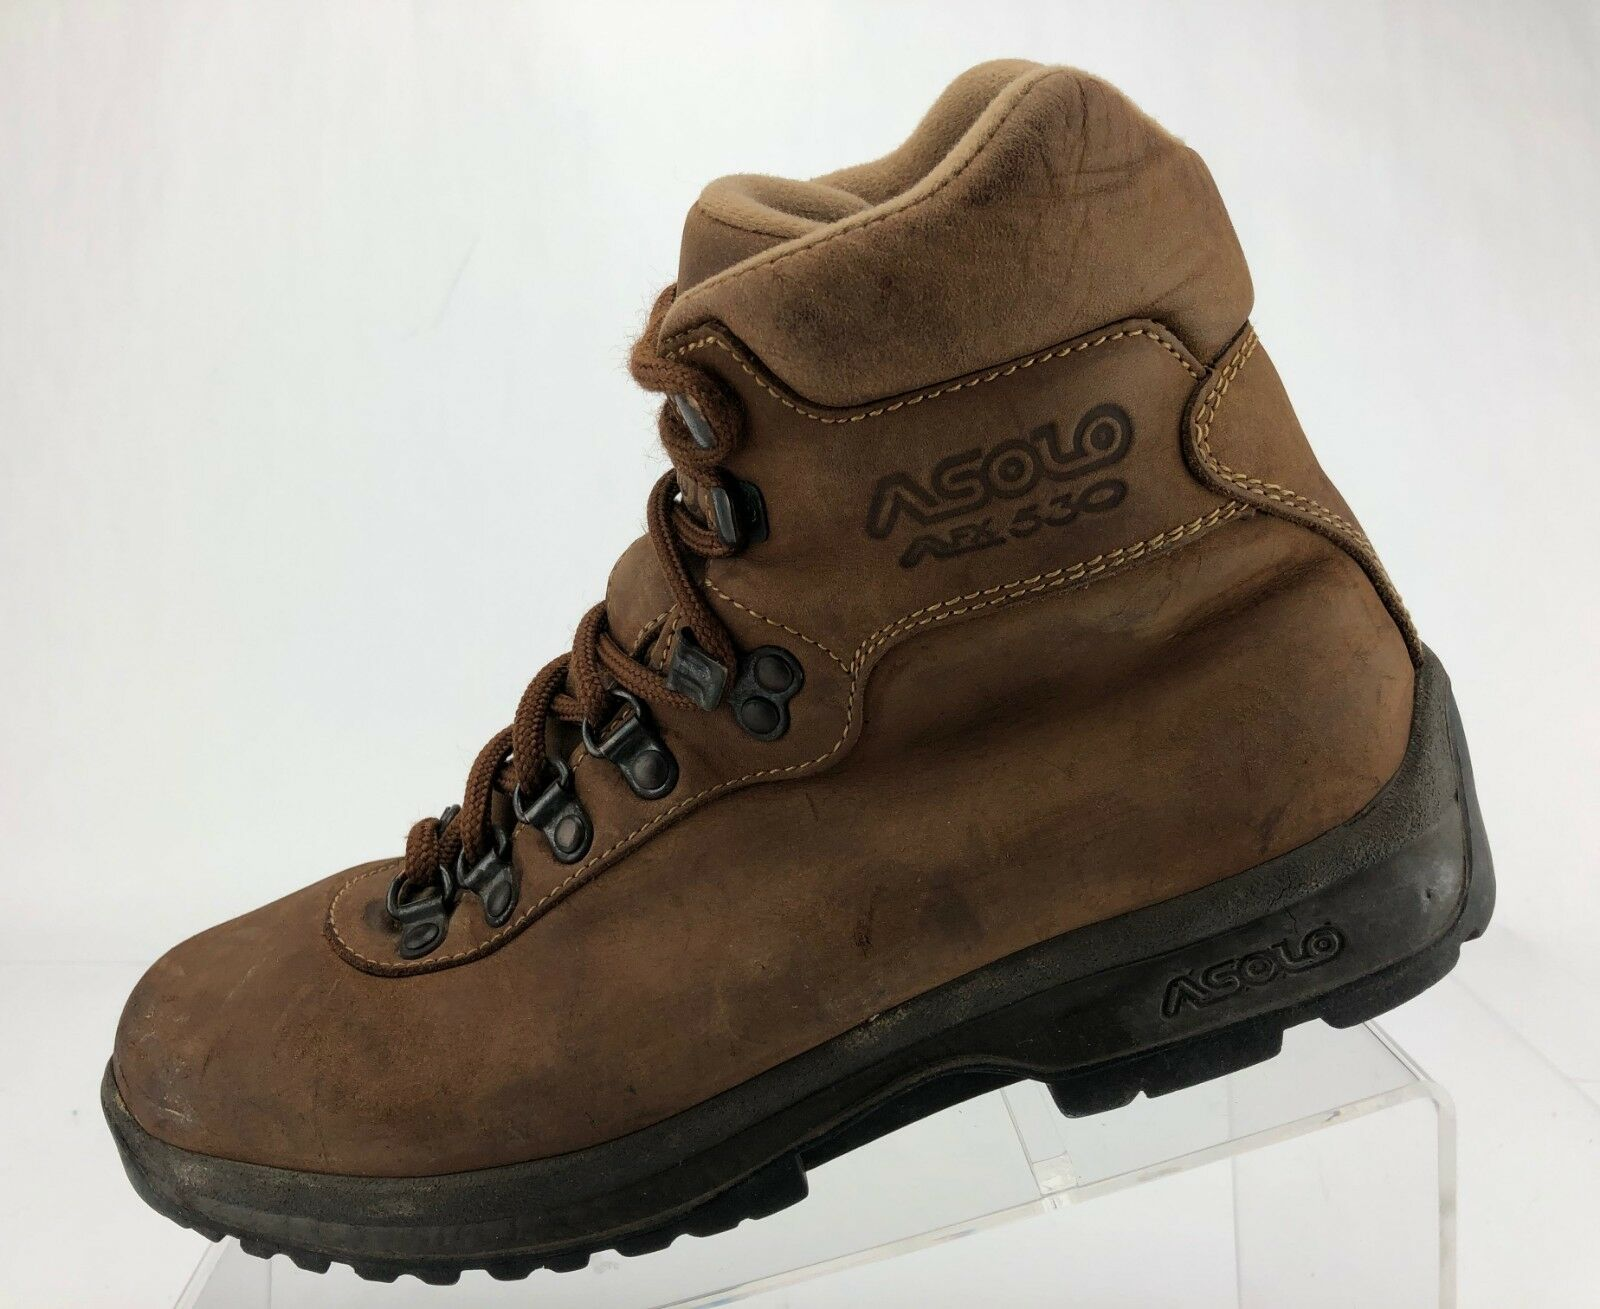 Asolo Ankle Boots AFX 530 Trail Hiking Brown Leather Trekking shoes Mens 7.5